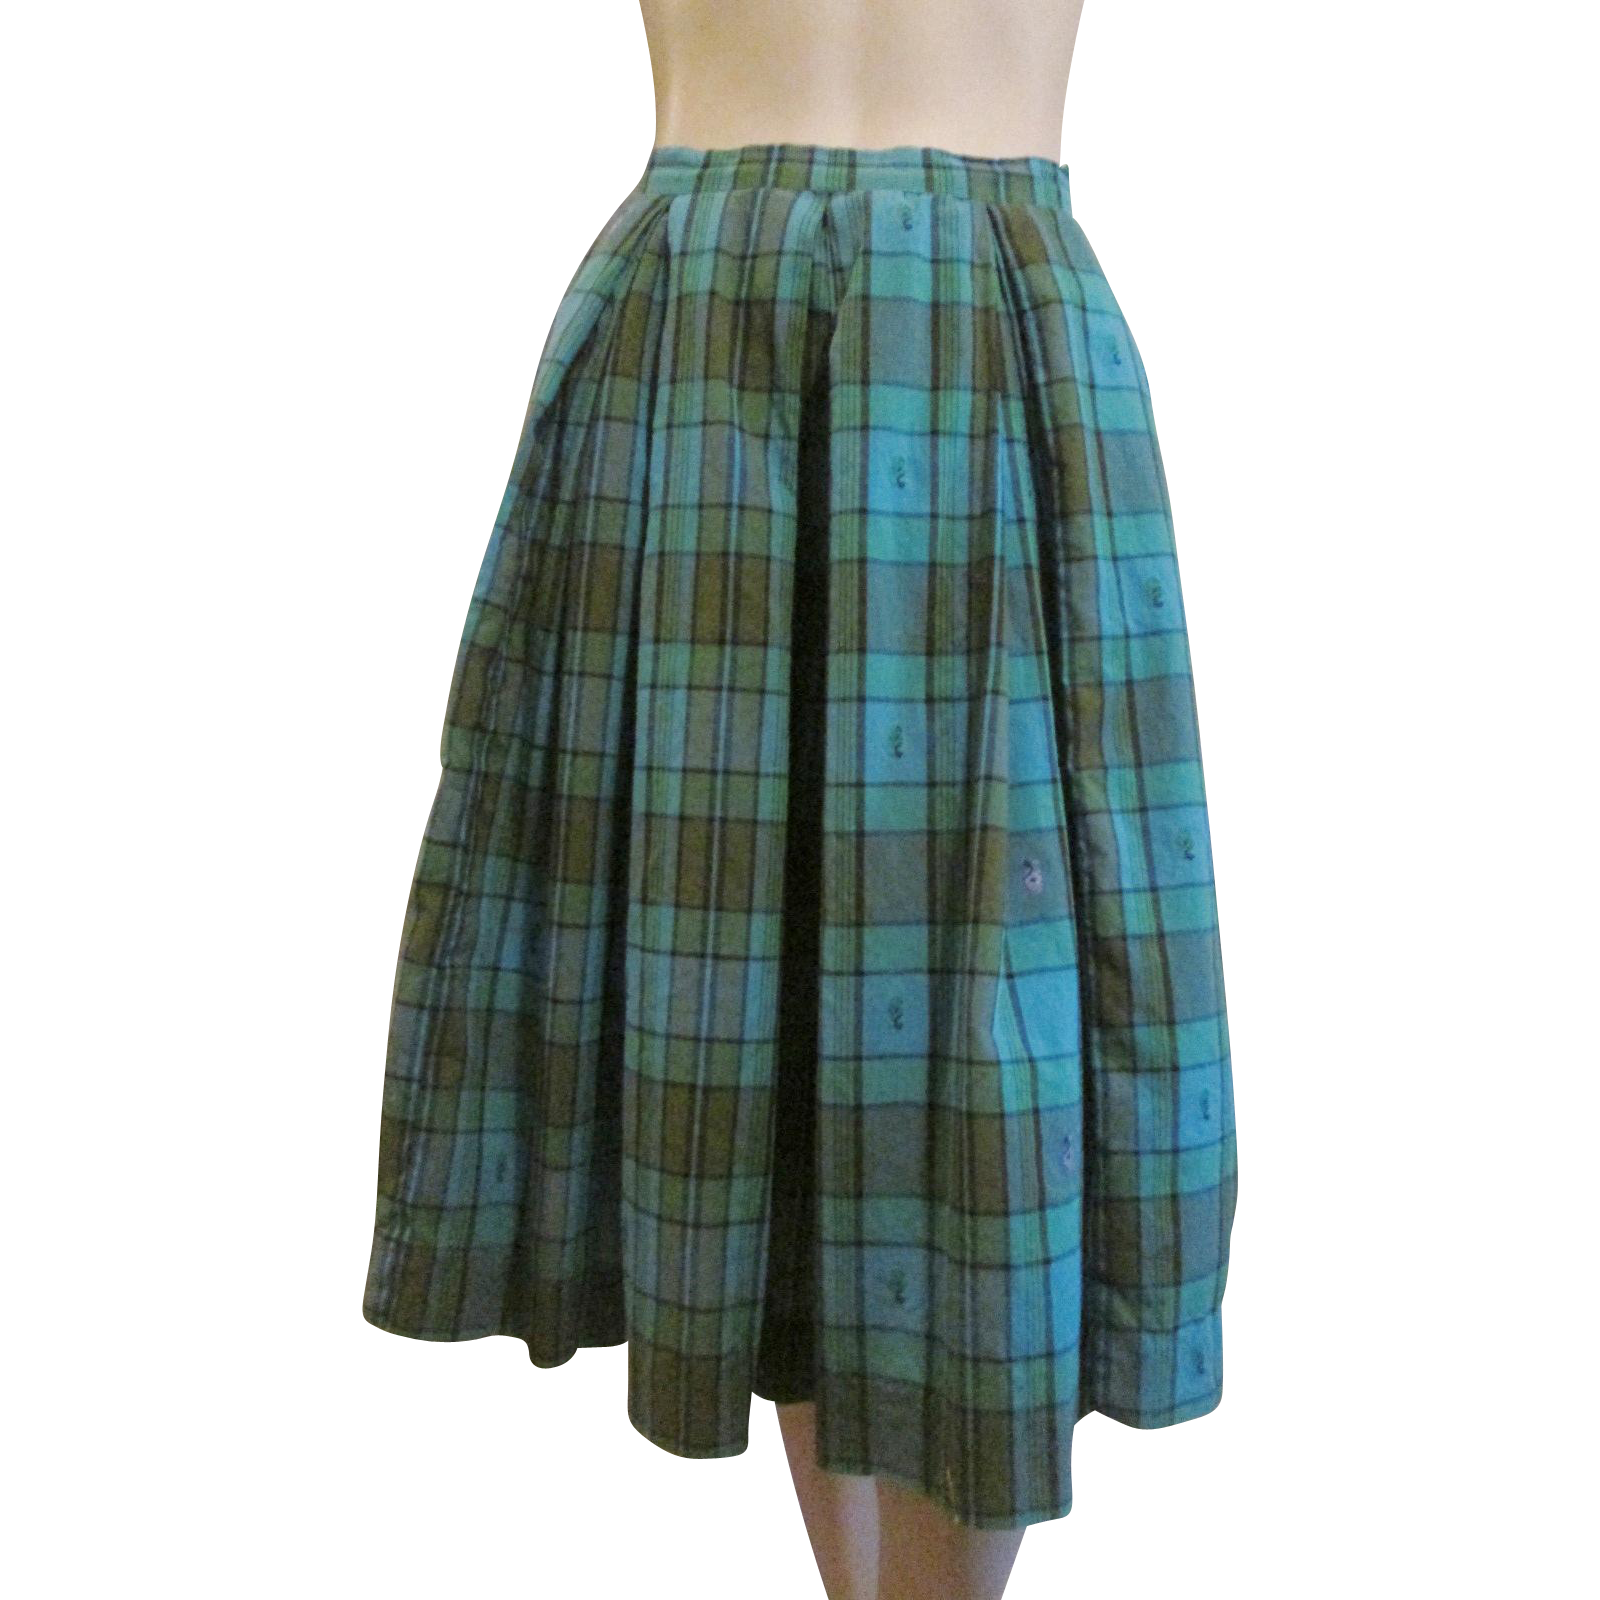 womens skirt vintage 1950s blue plaid cotton from